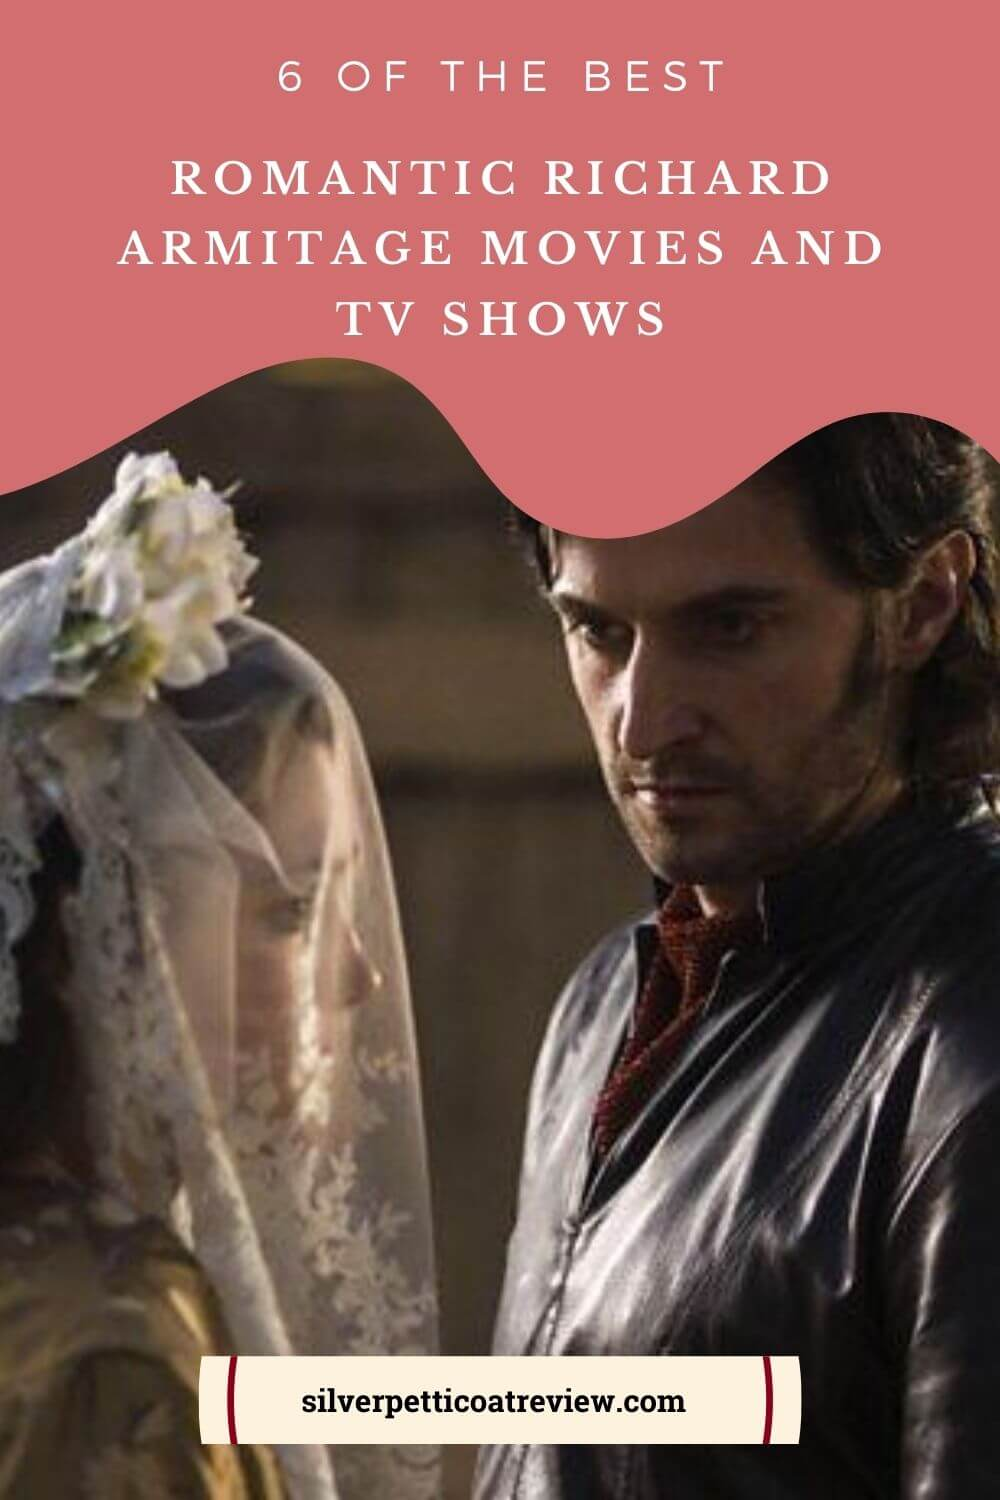 6 of the Best Romantic Richard Armitage Movies and TV Shows: Pinterest image